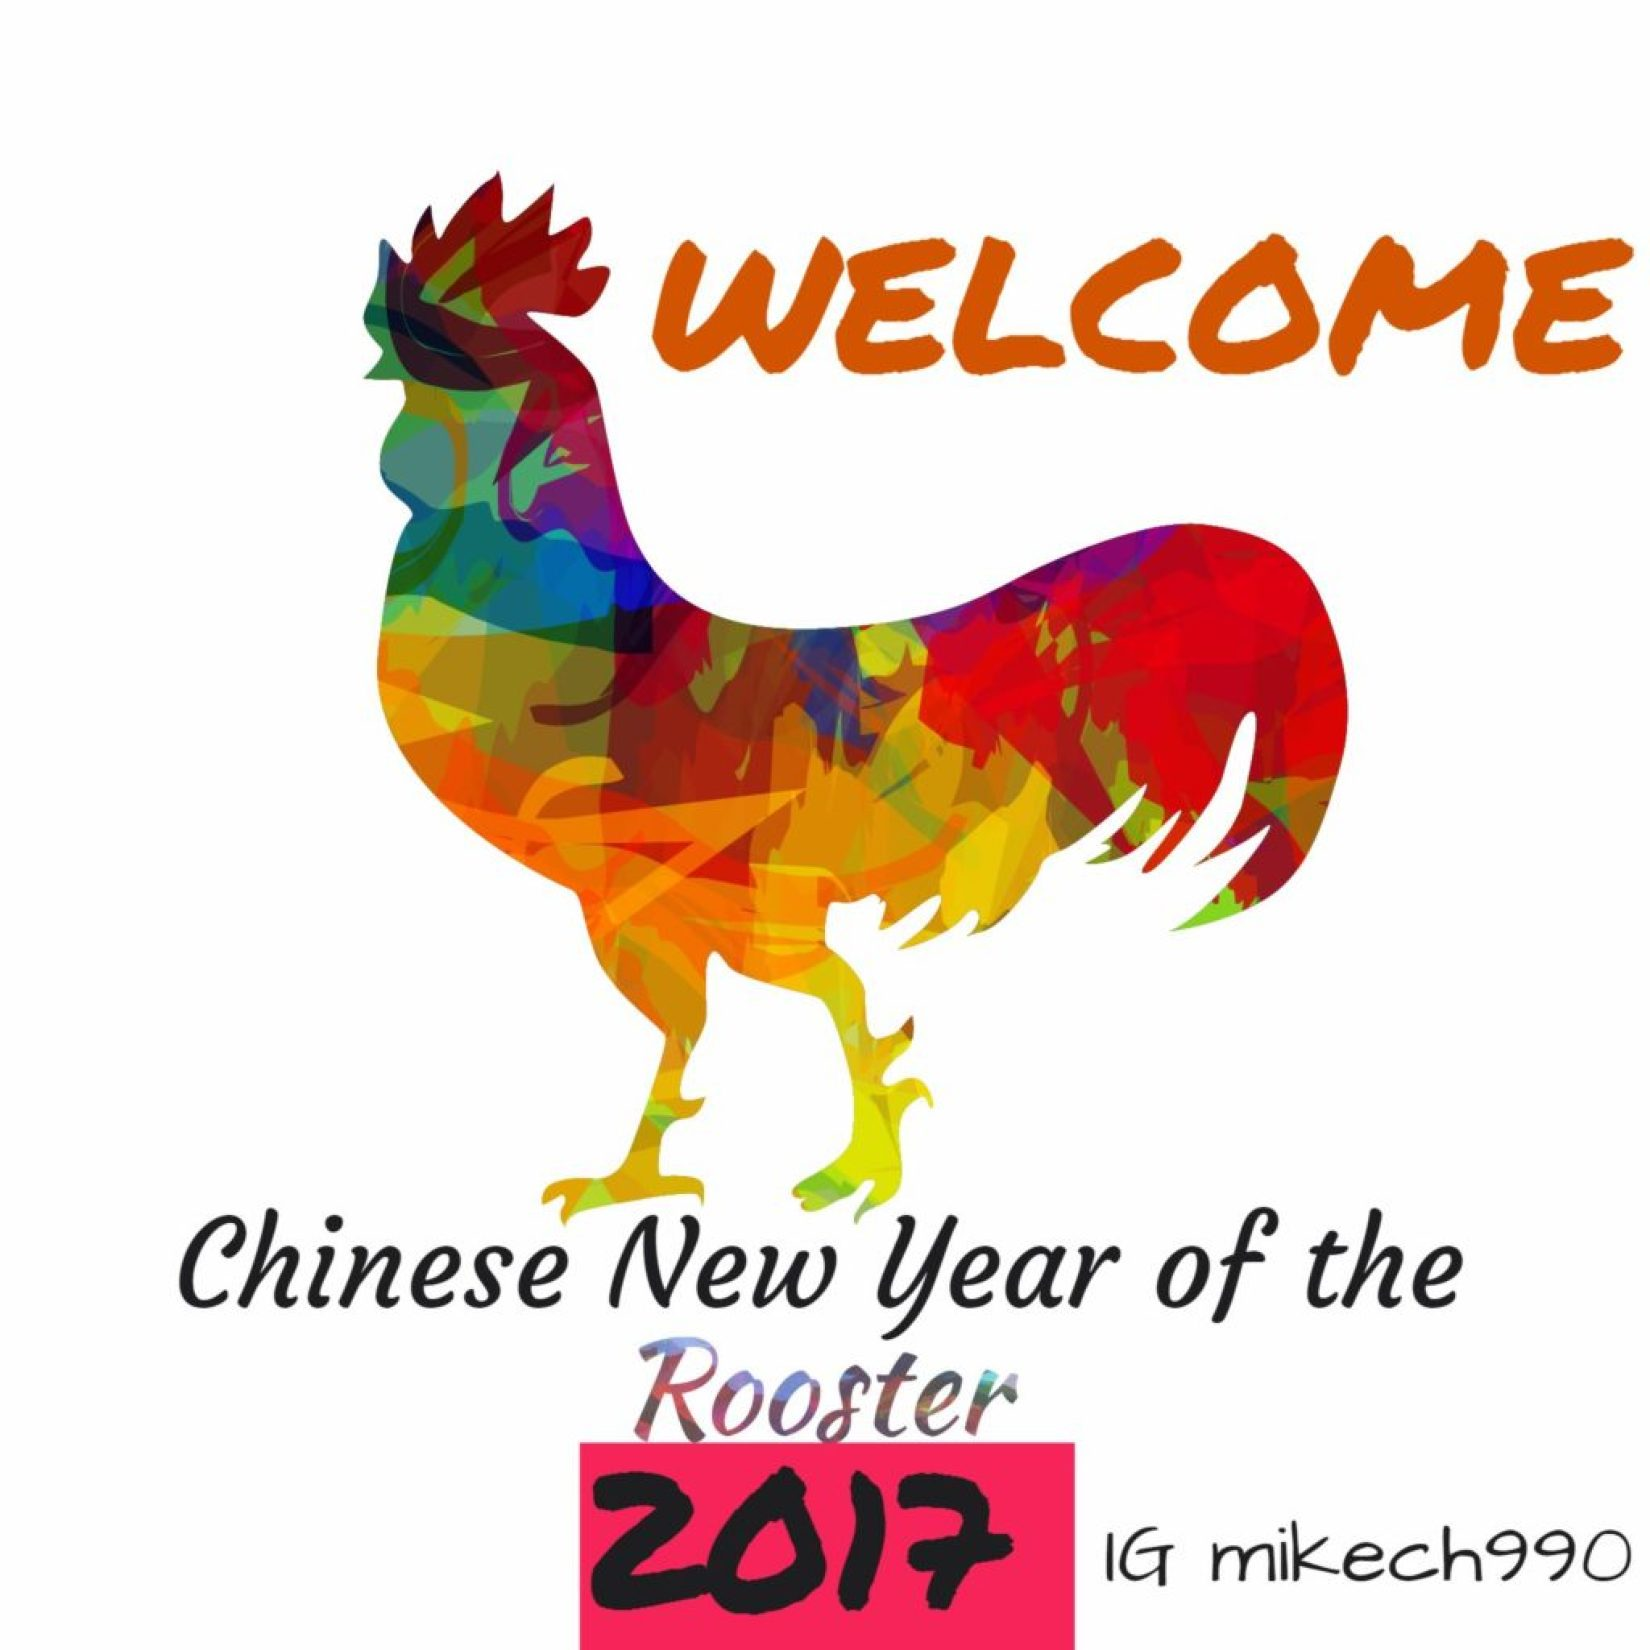 rooster year 2017